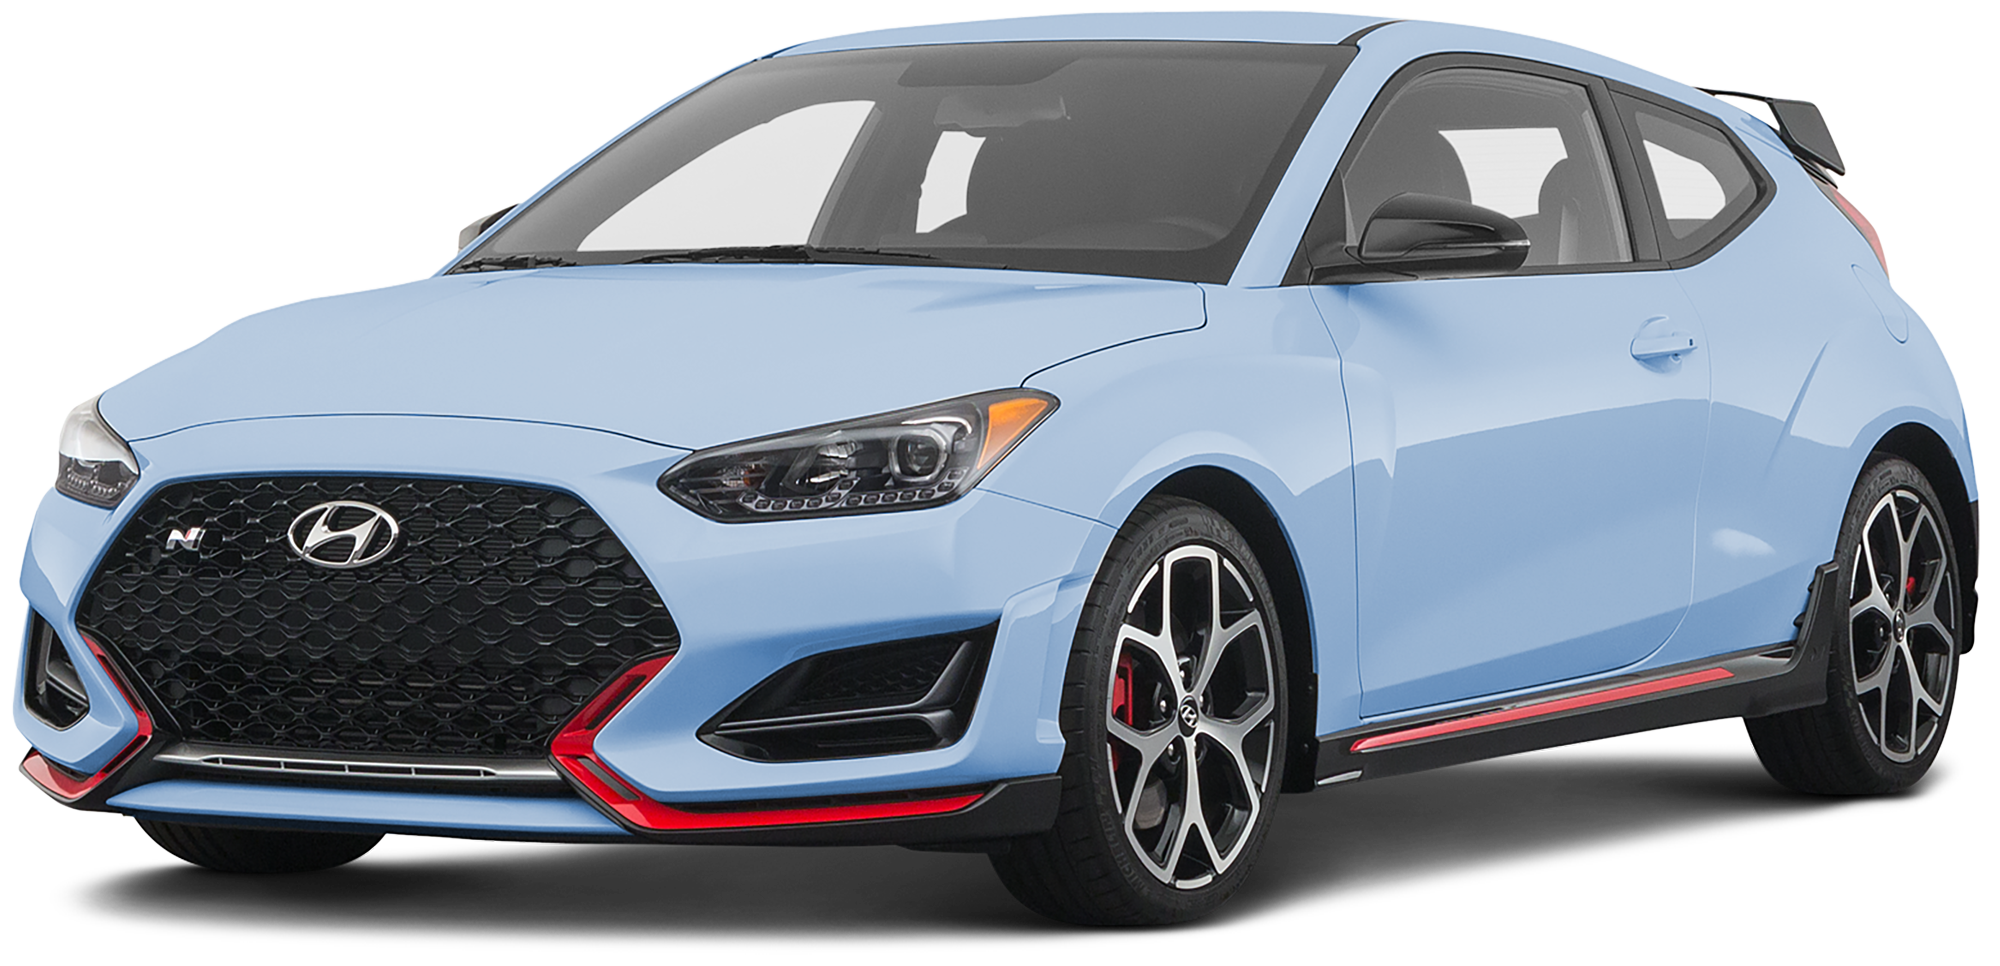 2020 Hyundai Veloster N Incentives, Specials & Offers in ...